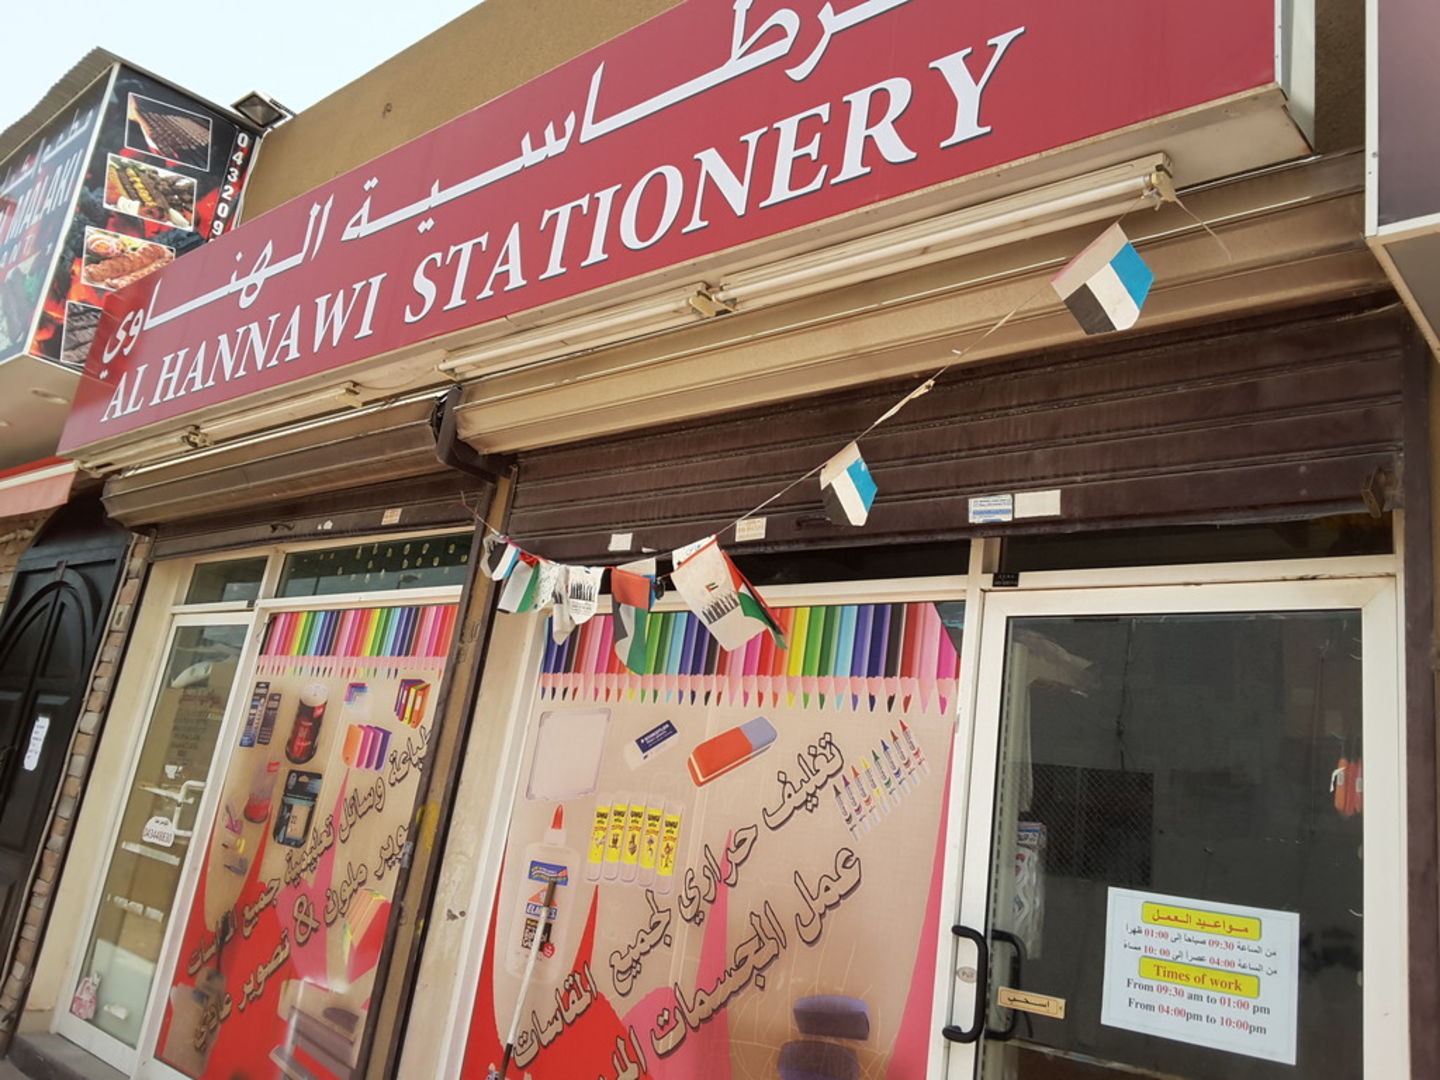 HiDubai-business-al-hannawi-stationery-shopping-office-supplies-stationery-al-wasl-dubai-2